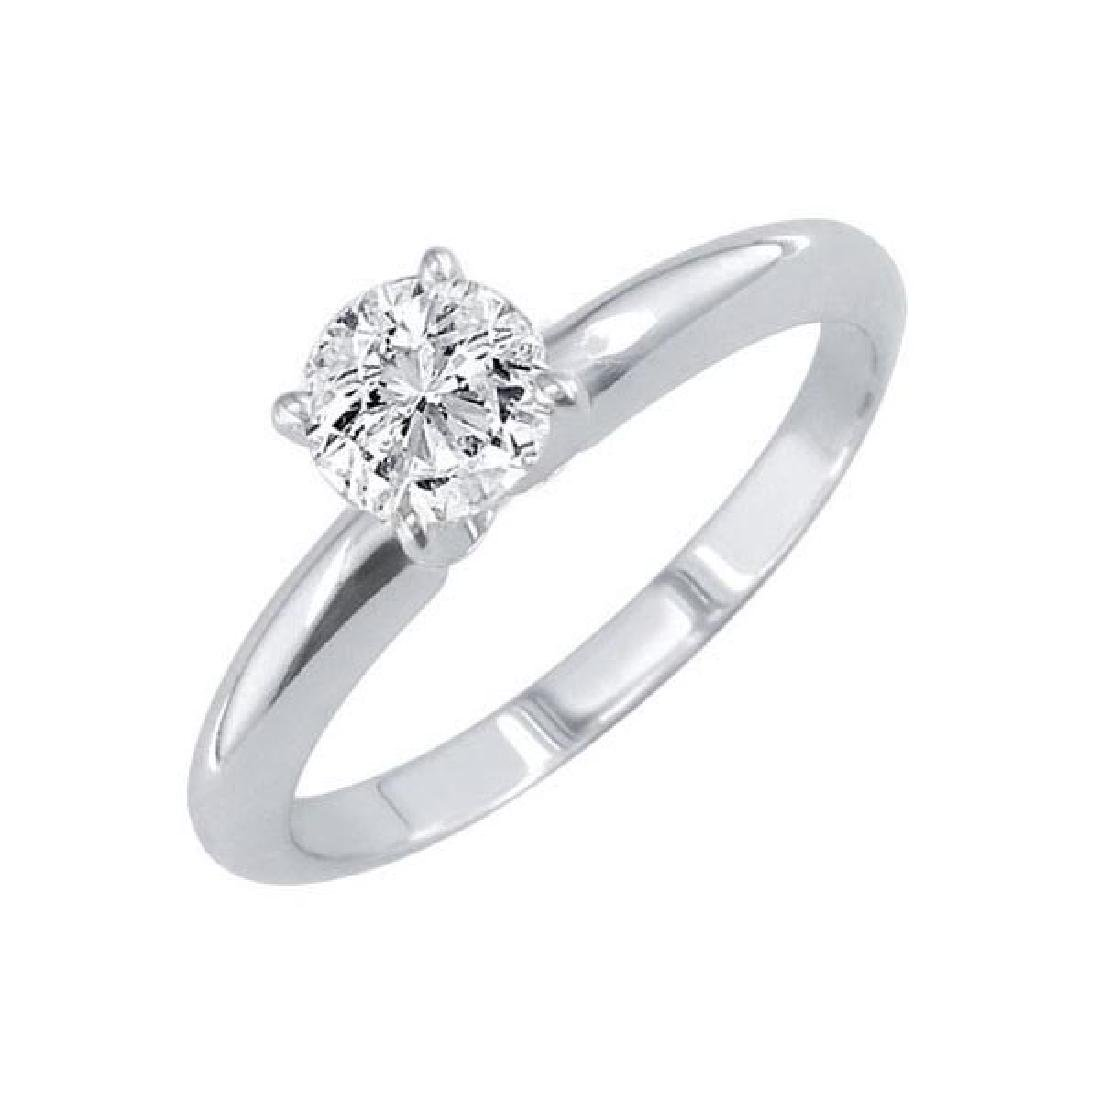 Certified 0.73 CTW Round Diamond Solitaire 14k Ring H/S